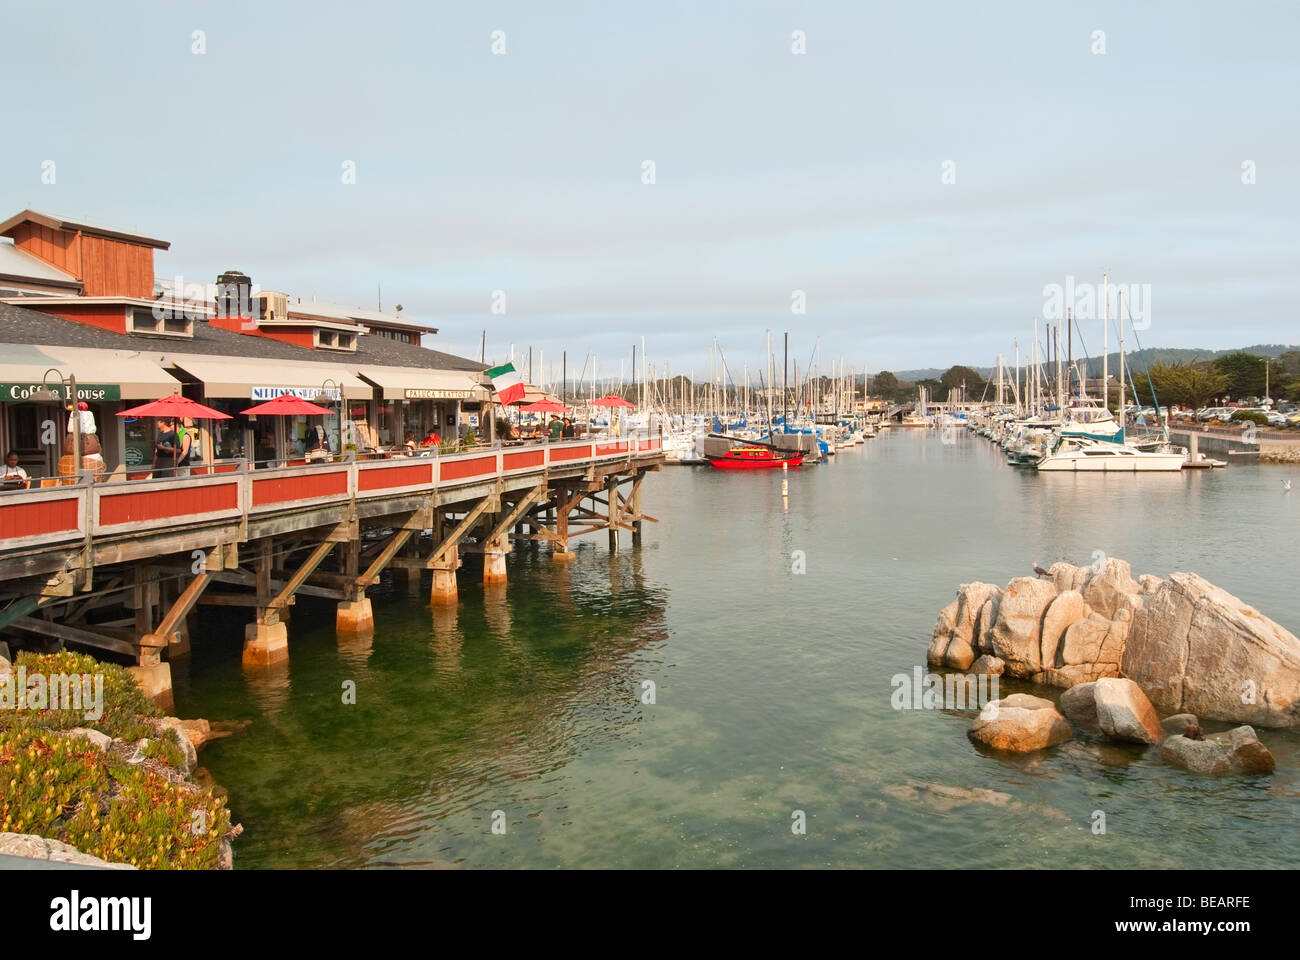 The Old Fisherman's Wharf at Monterey Bay, California - Stock Image